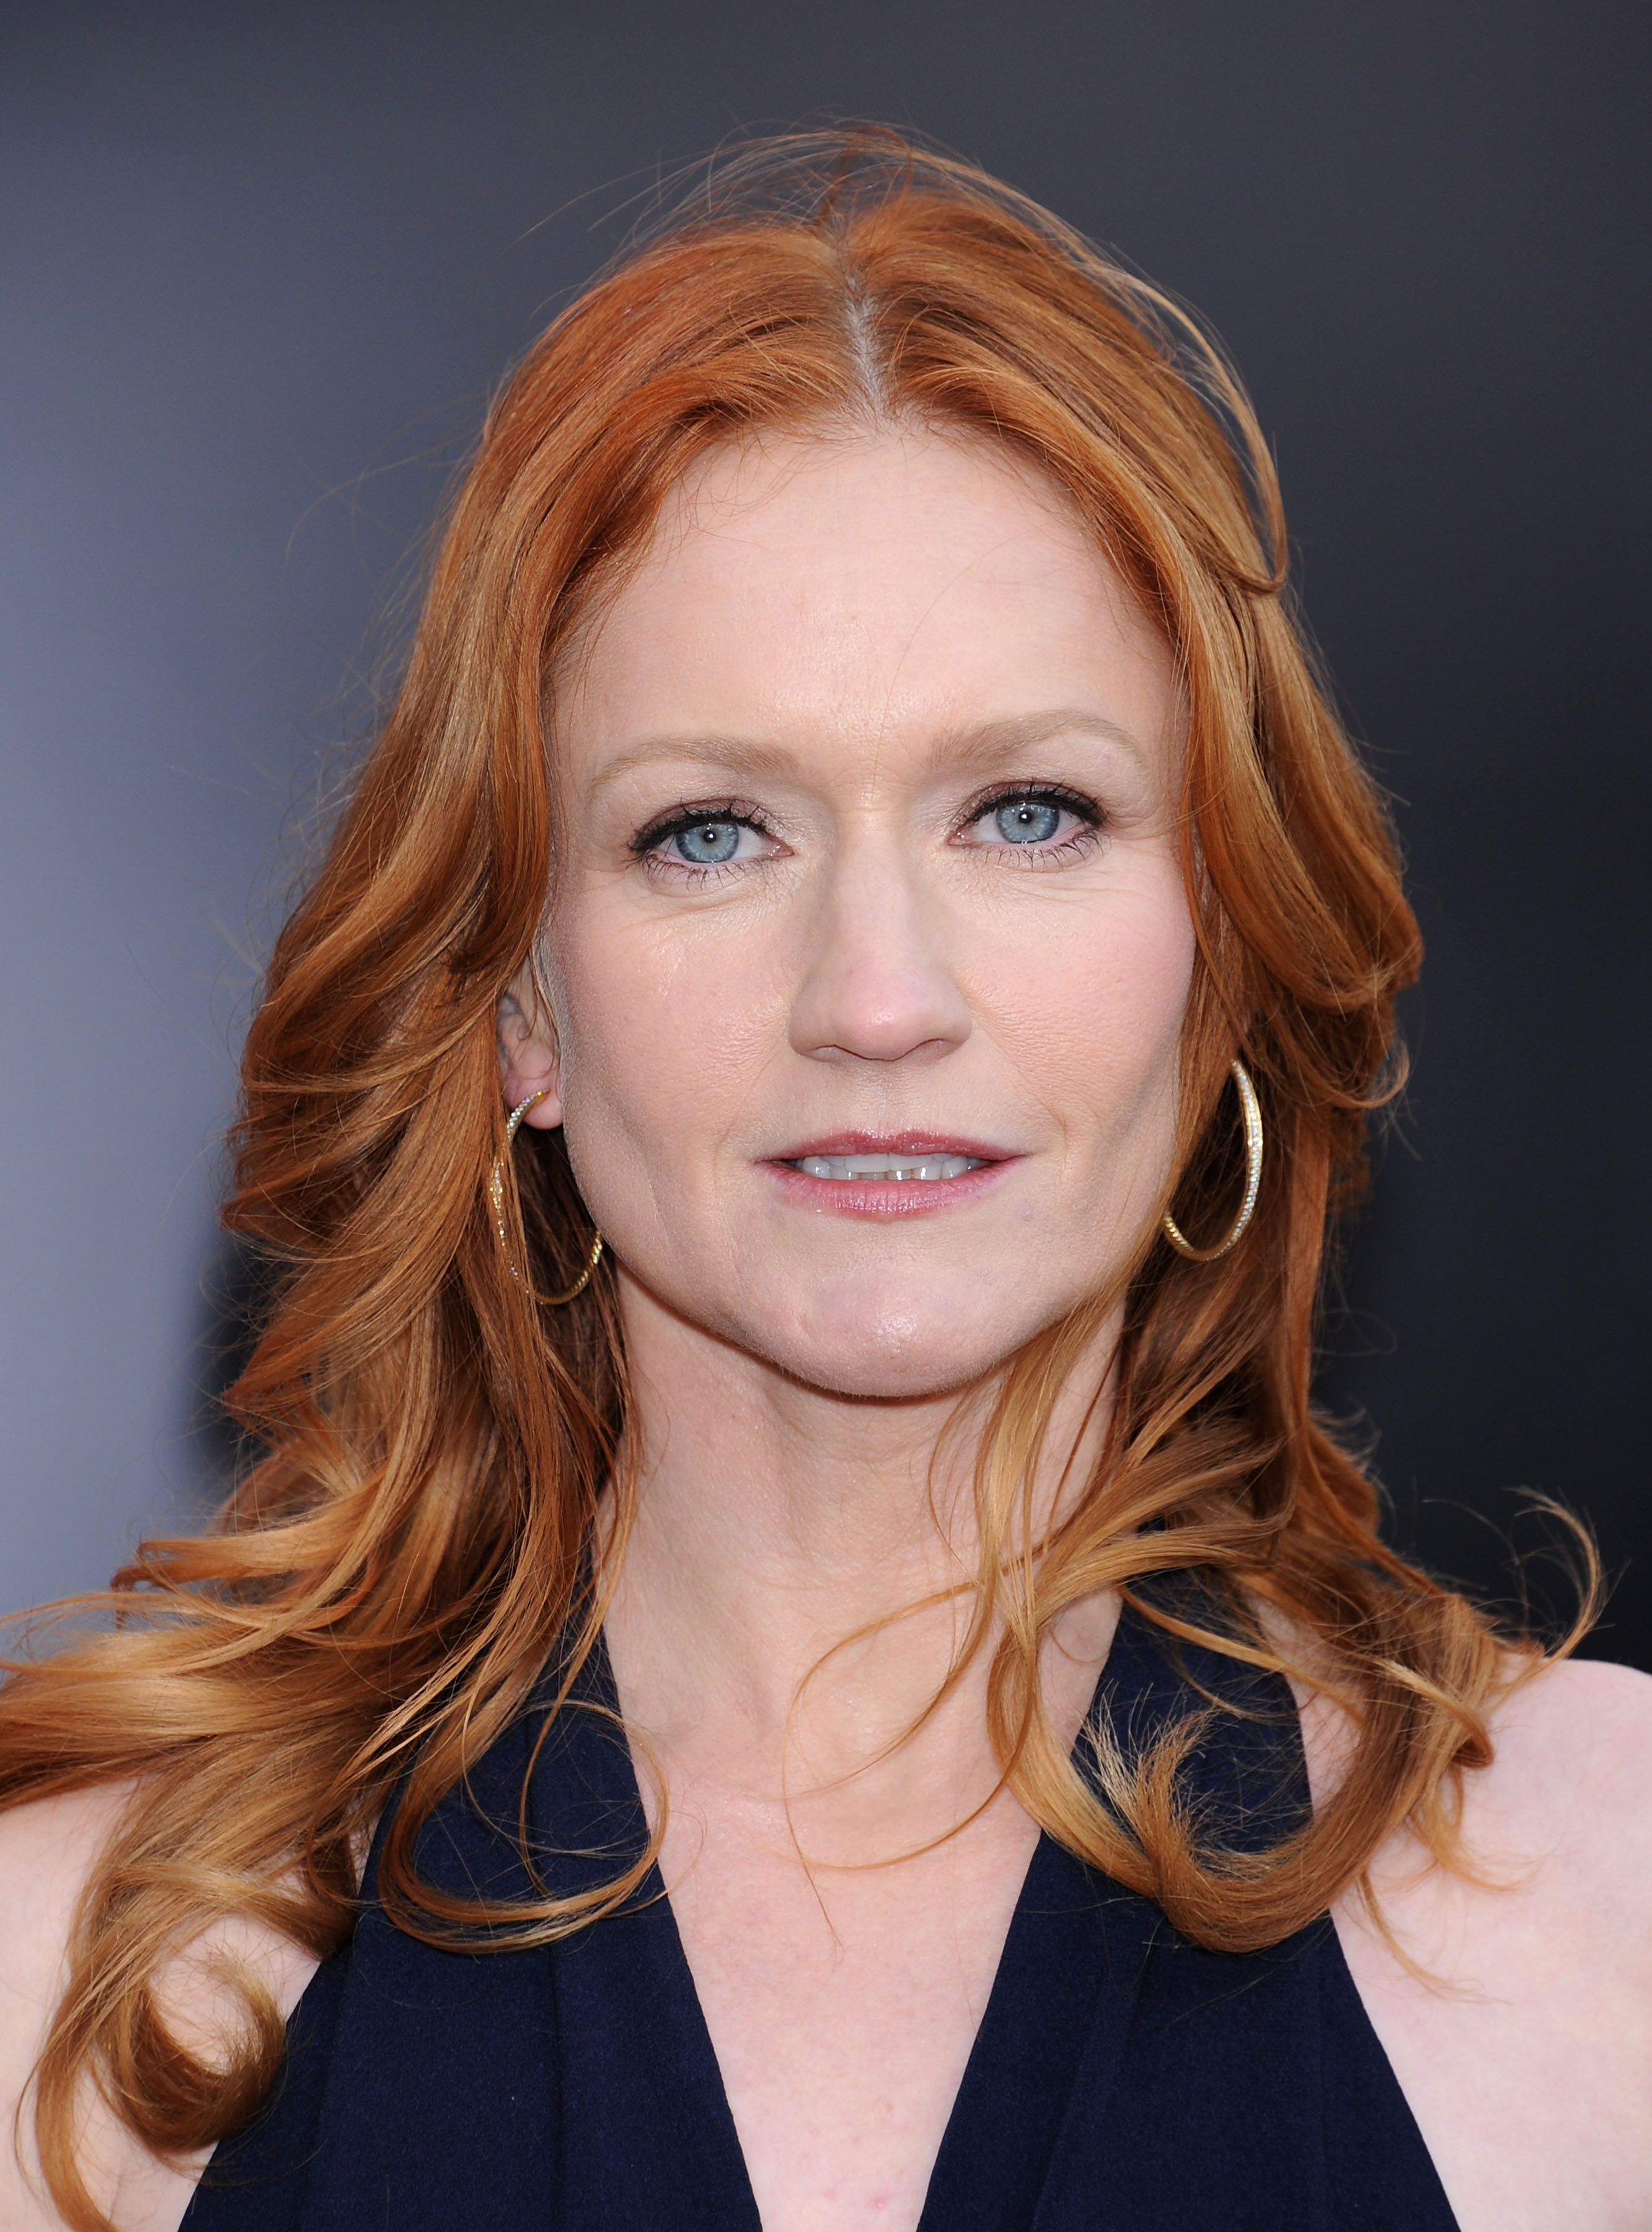 Celebrity Paula Malcomson naked (86 photos), Topless, Leaked, Feet, braless 2020